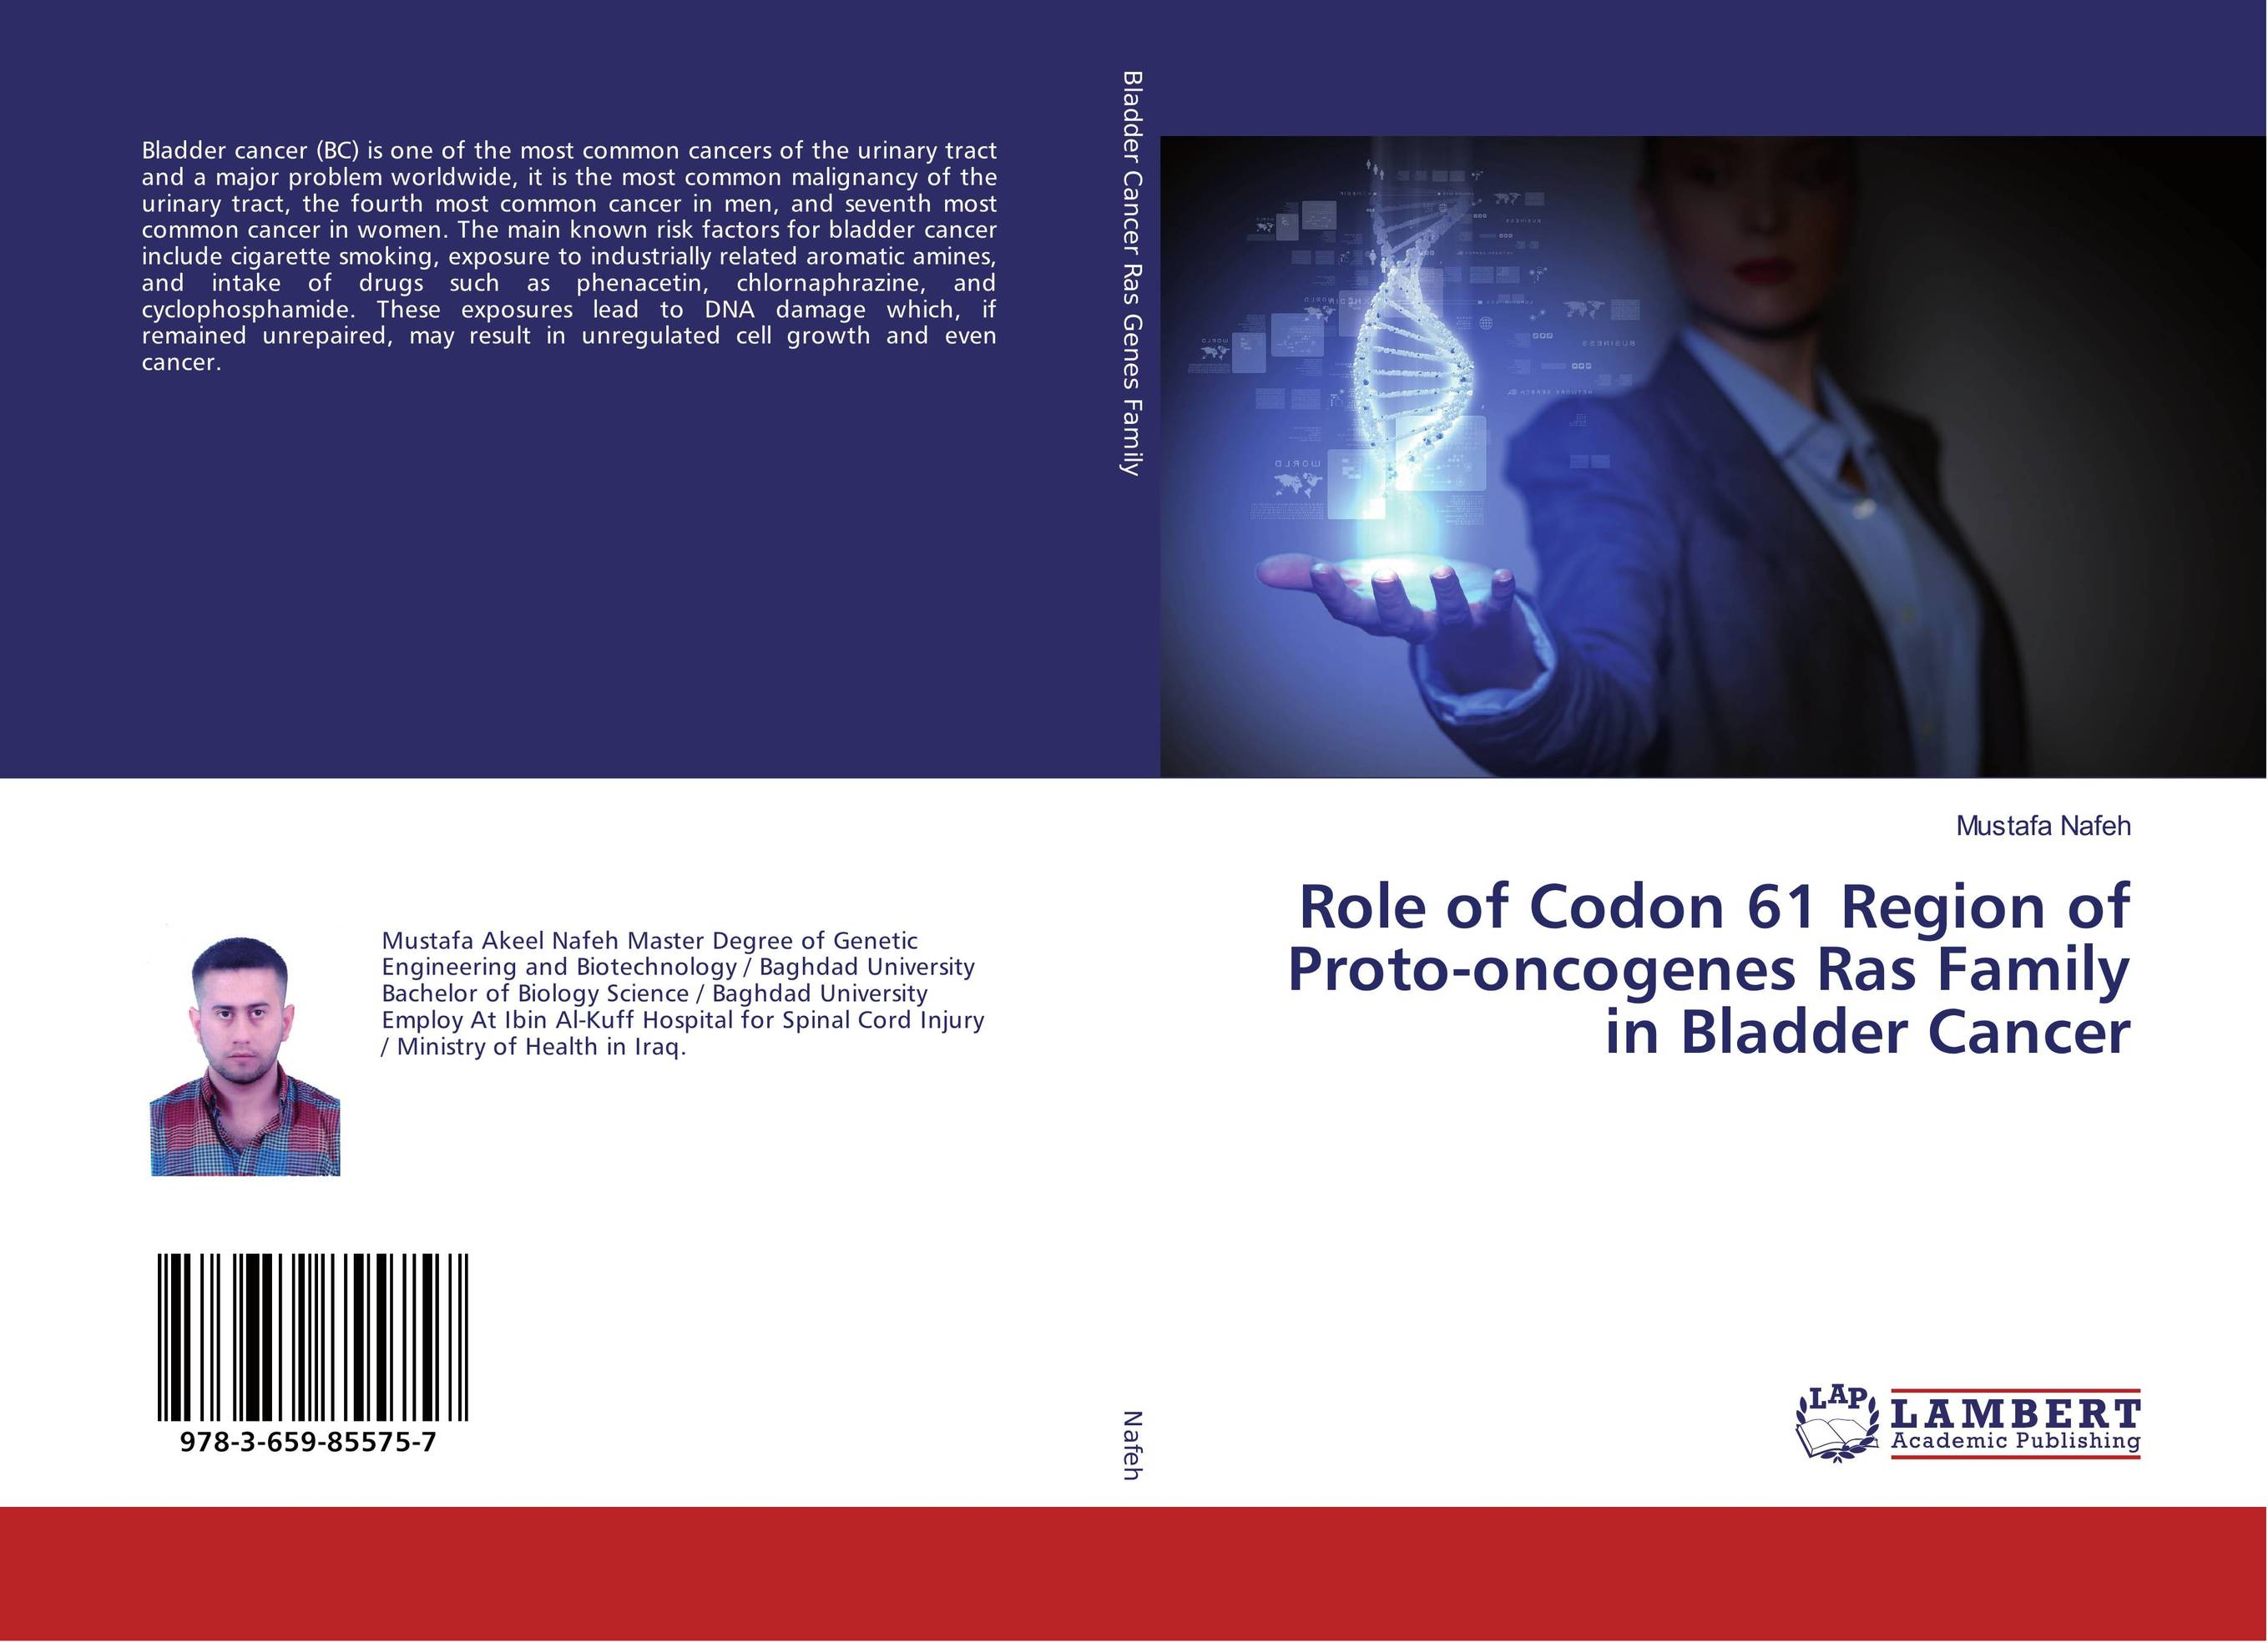 Role of Codon 61 Region of Proto-oncogenes Ras Family in Bladder Cancer the common link